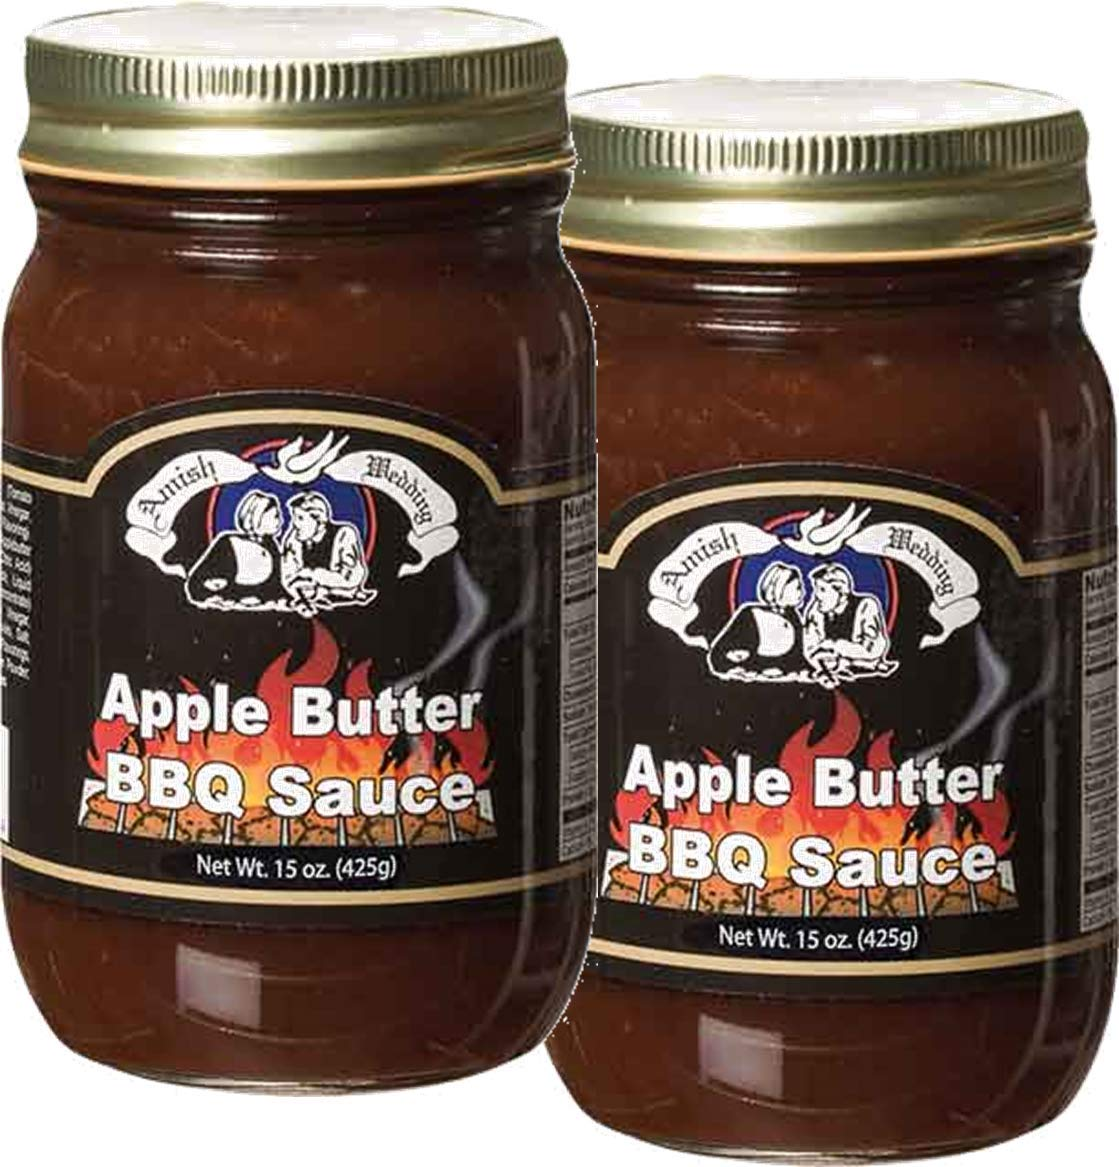 Amish Wedding Old Fashioned BBQ Sauce, Your Choice of 4 Flavors, TWO 15 oz. Jars (Apple Butter)